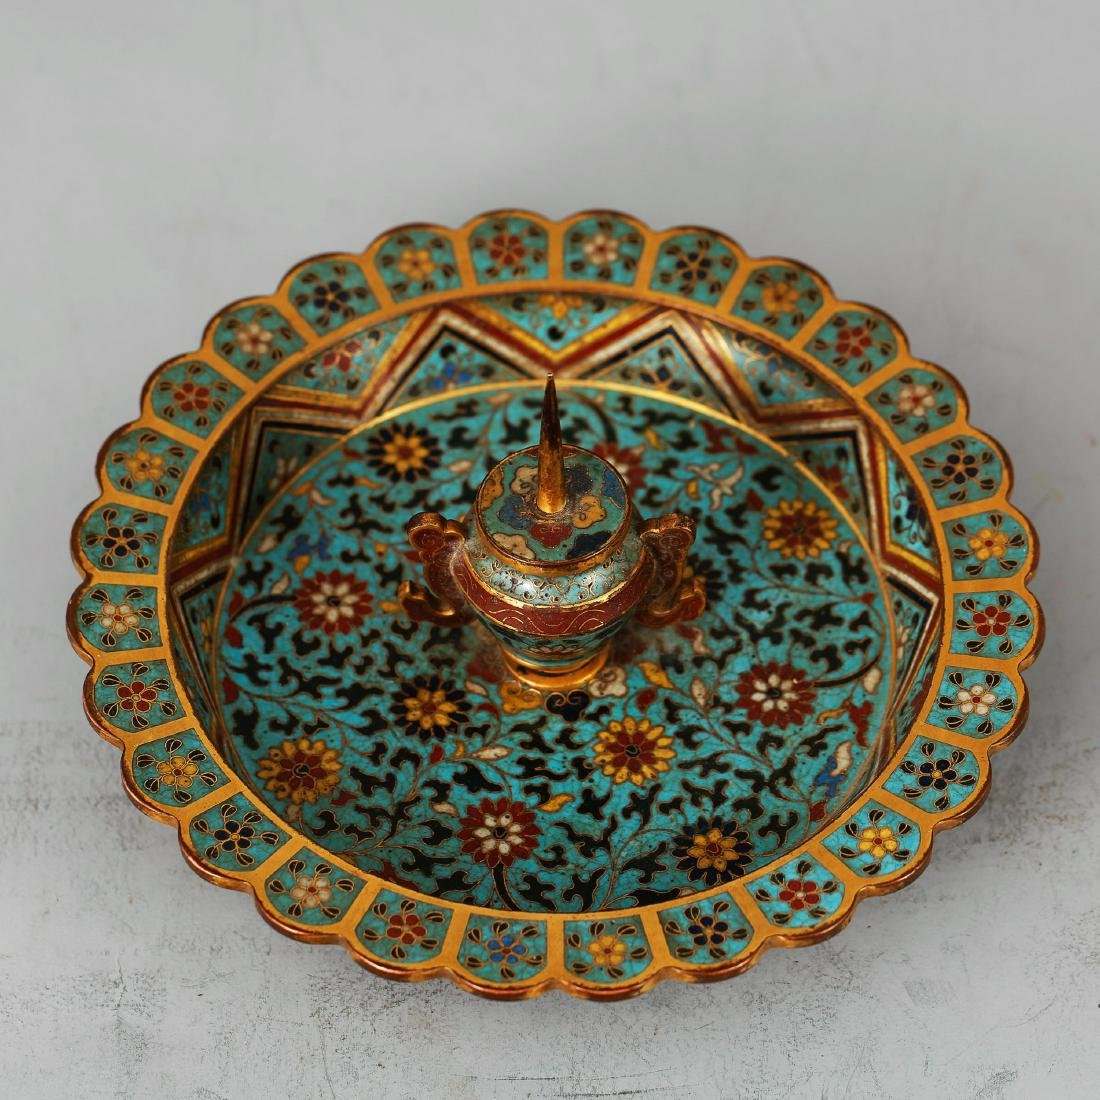 CHINESE CLOISONNE ENAMEL CANDLE STAND